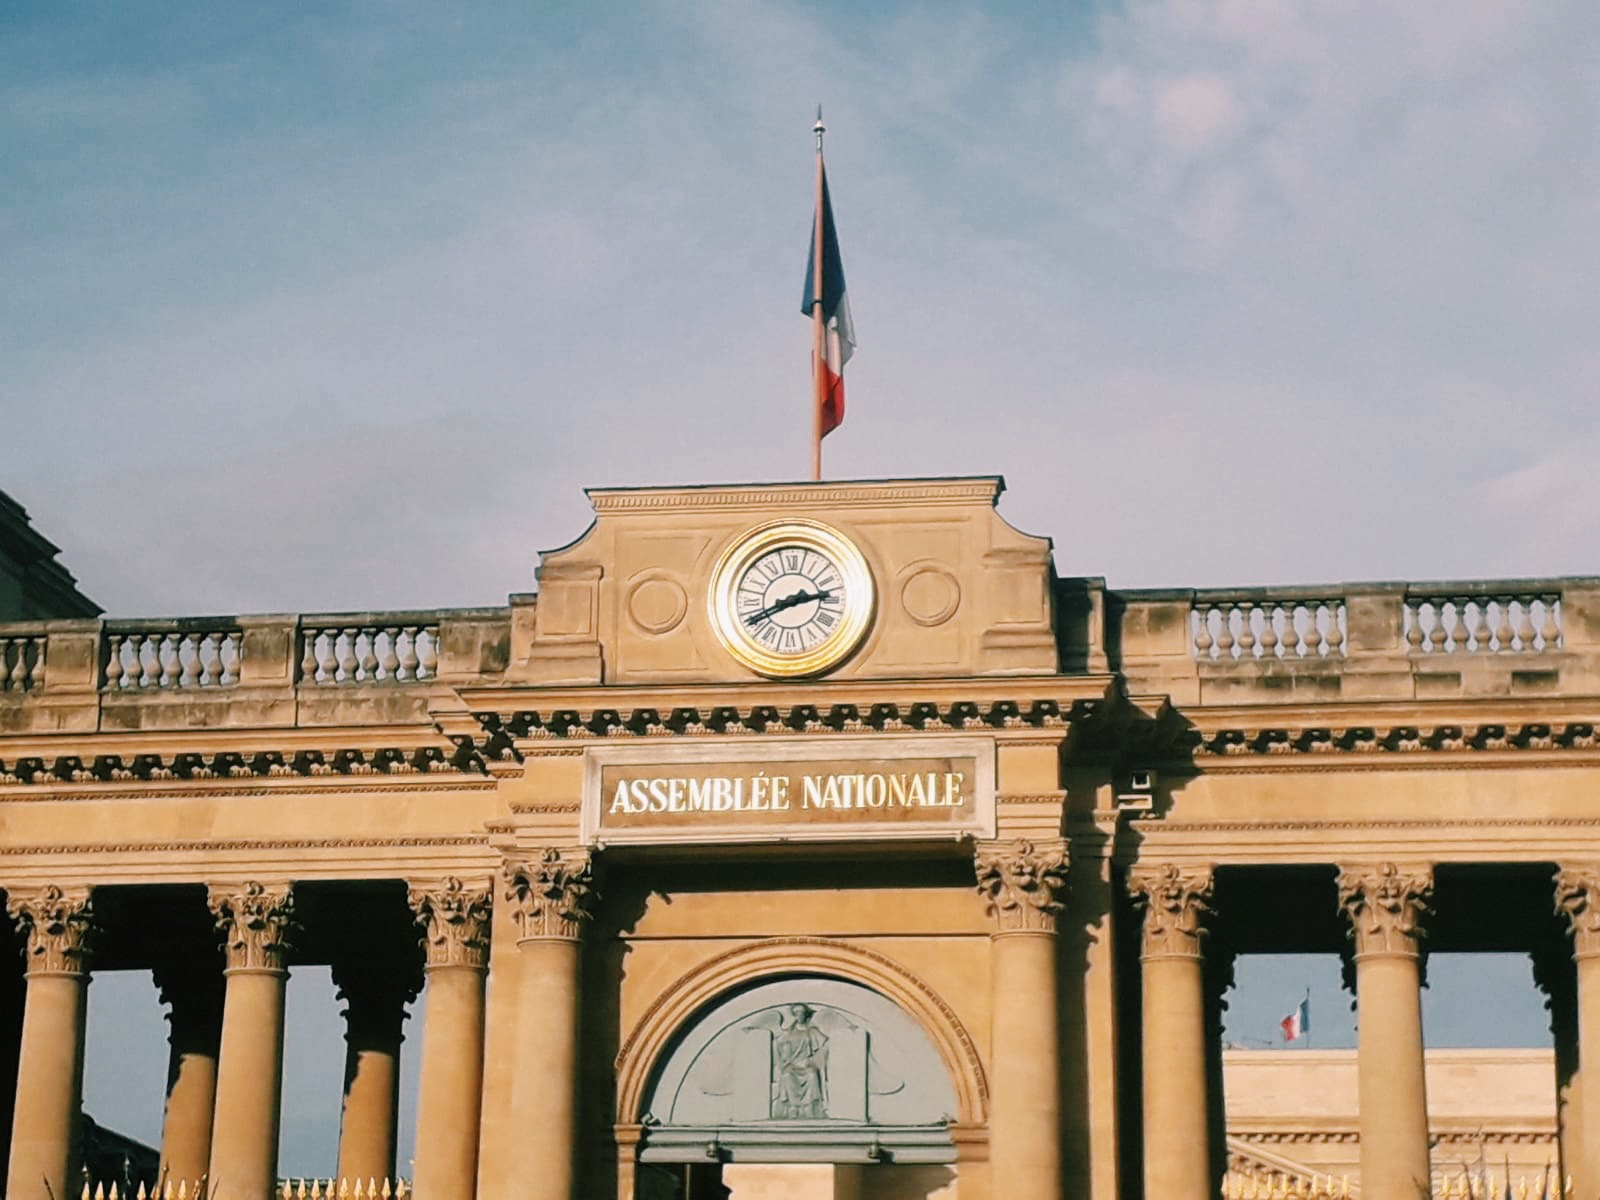 France's National Assembly hosted a roundtable on medical cannabis for politicians and stakeholders earlier this month.